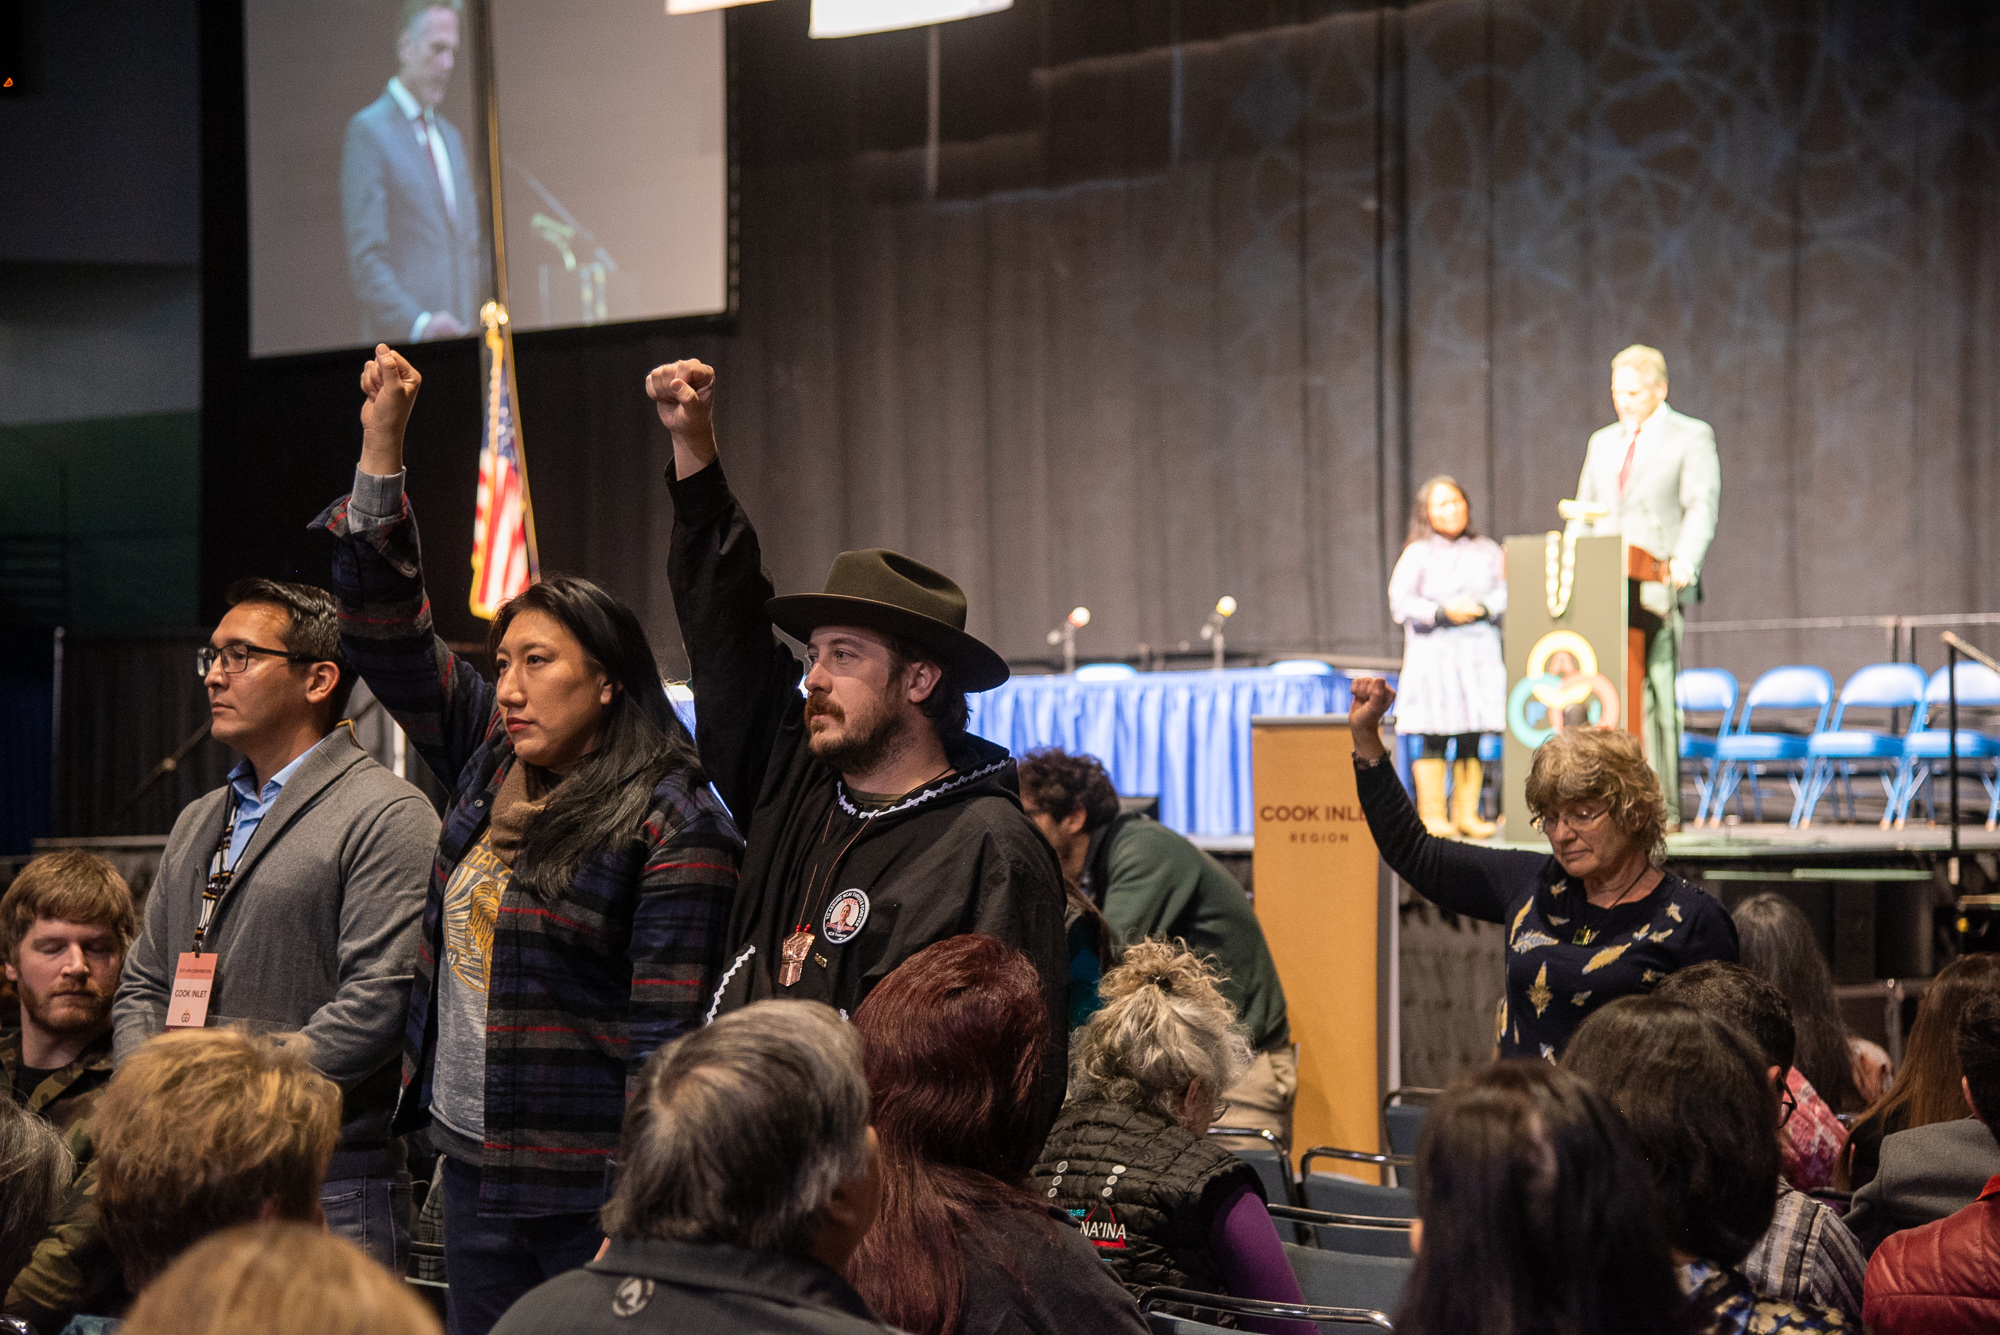 Dunleavy strikes unconvincing conciliatory tone as he's met with protests at AFN | The Midnight Sun